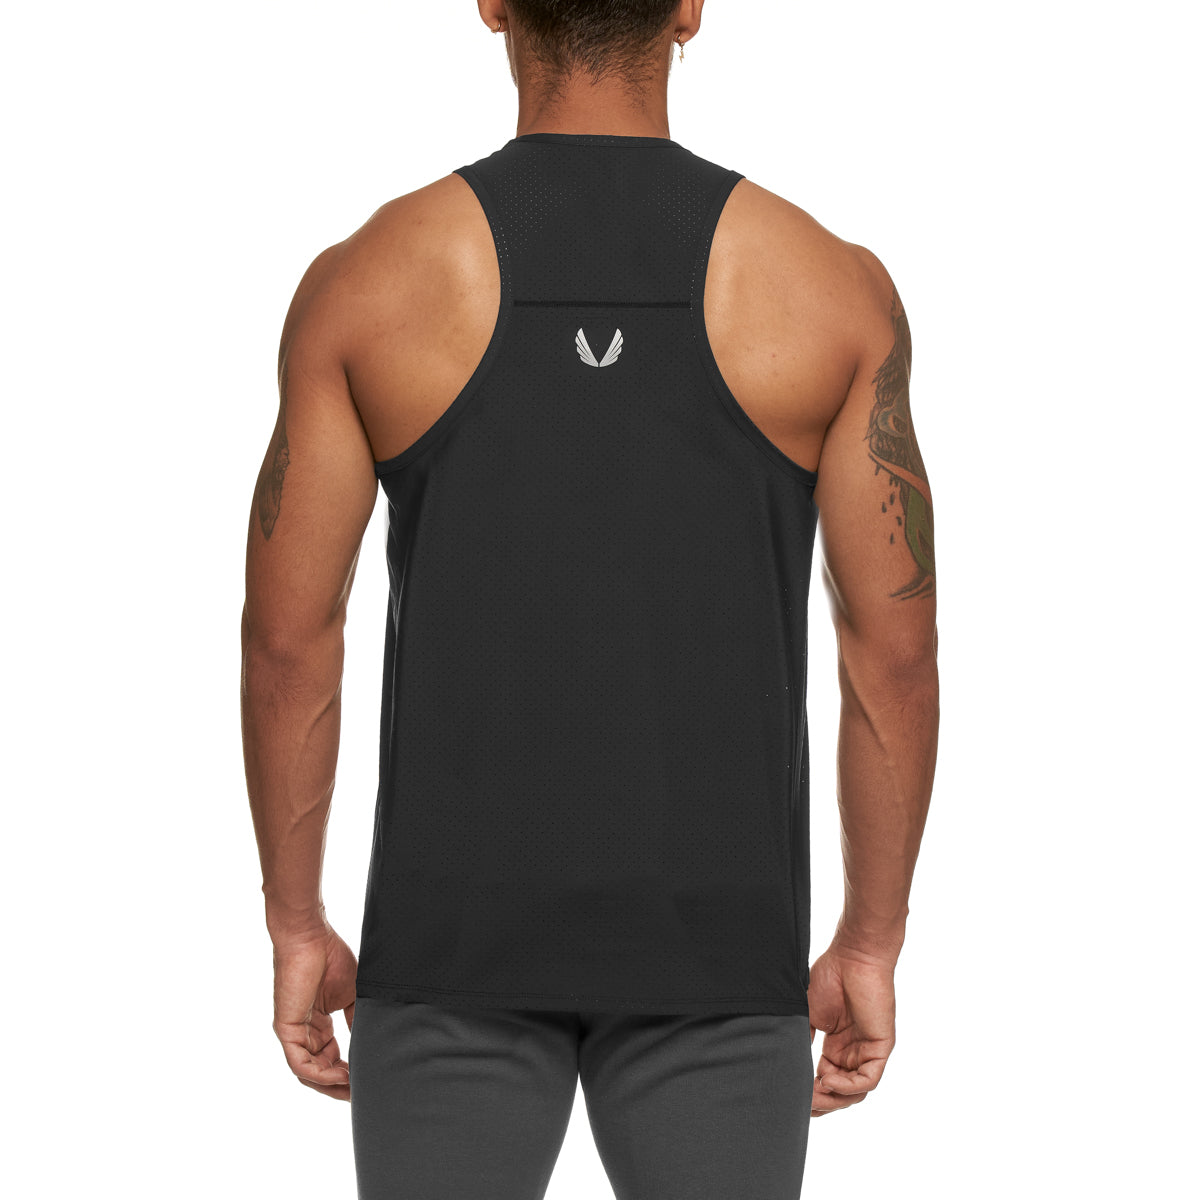 0303. Laser-Lite™ Performance Singlet - Black